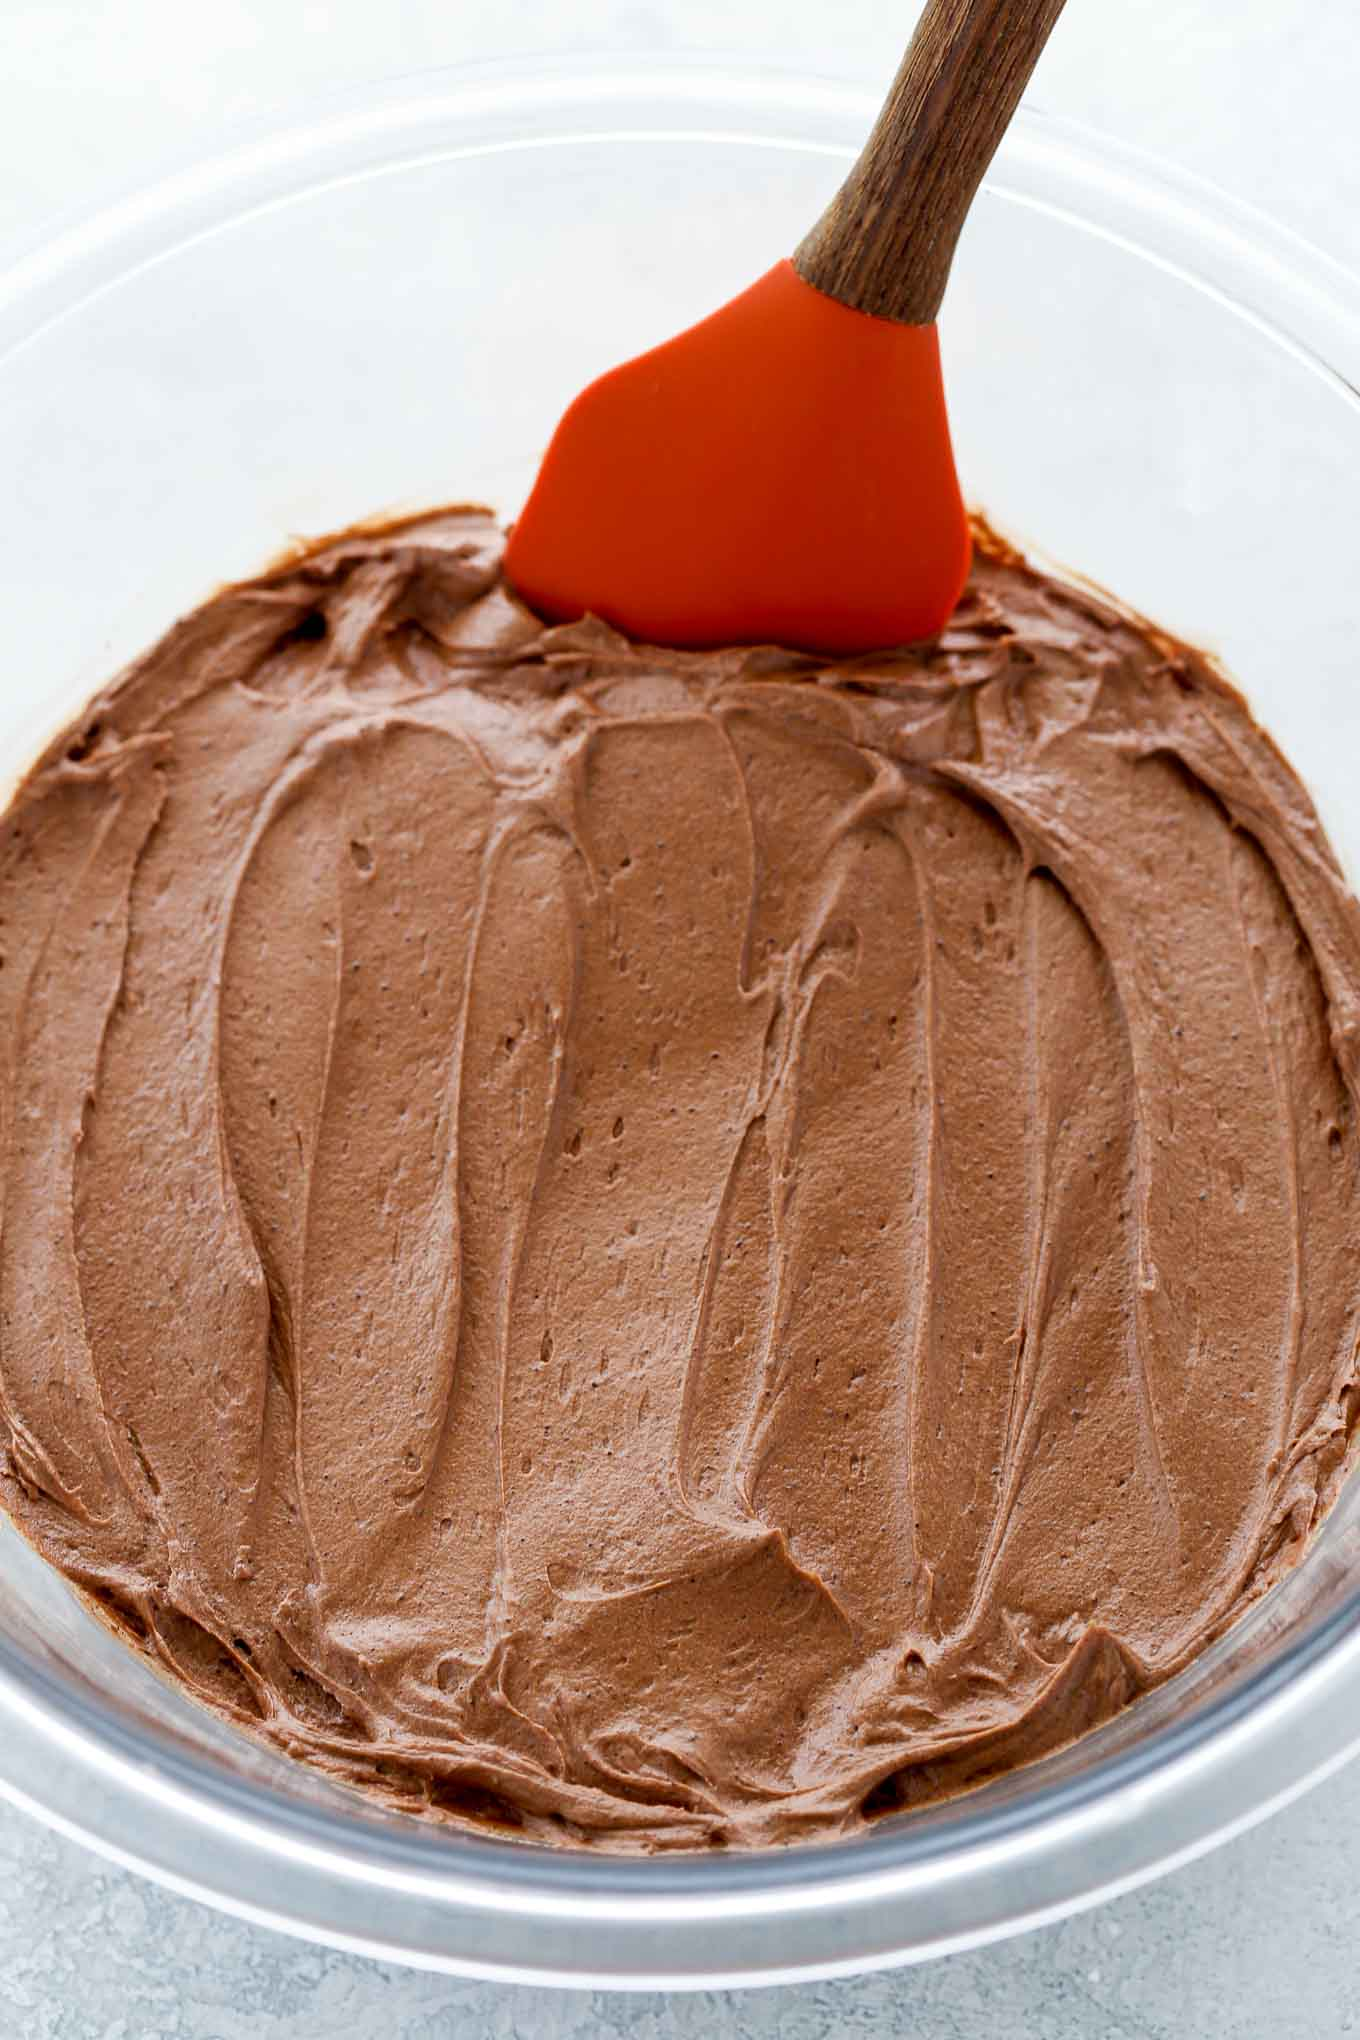 A glass bowl full of chocolate buttercream frosting with a spatula resting on the side.